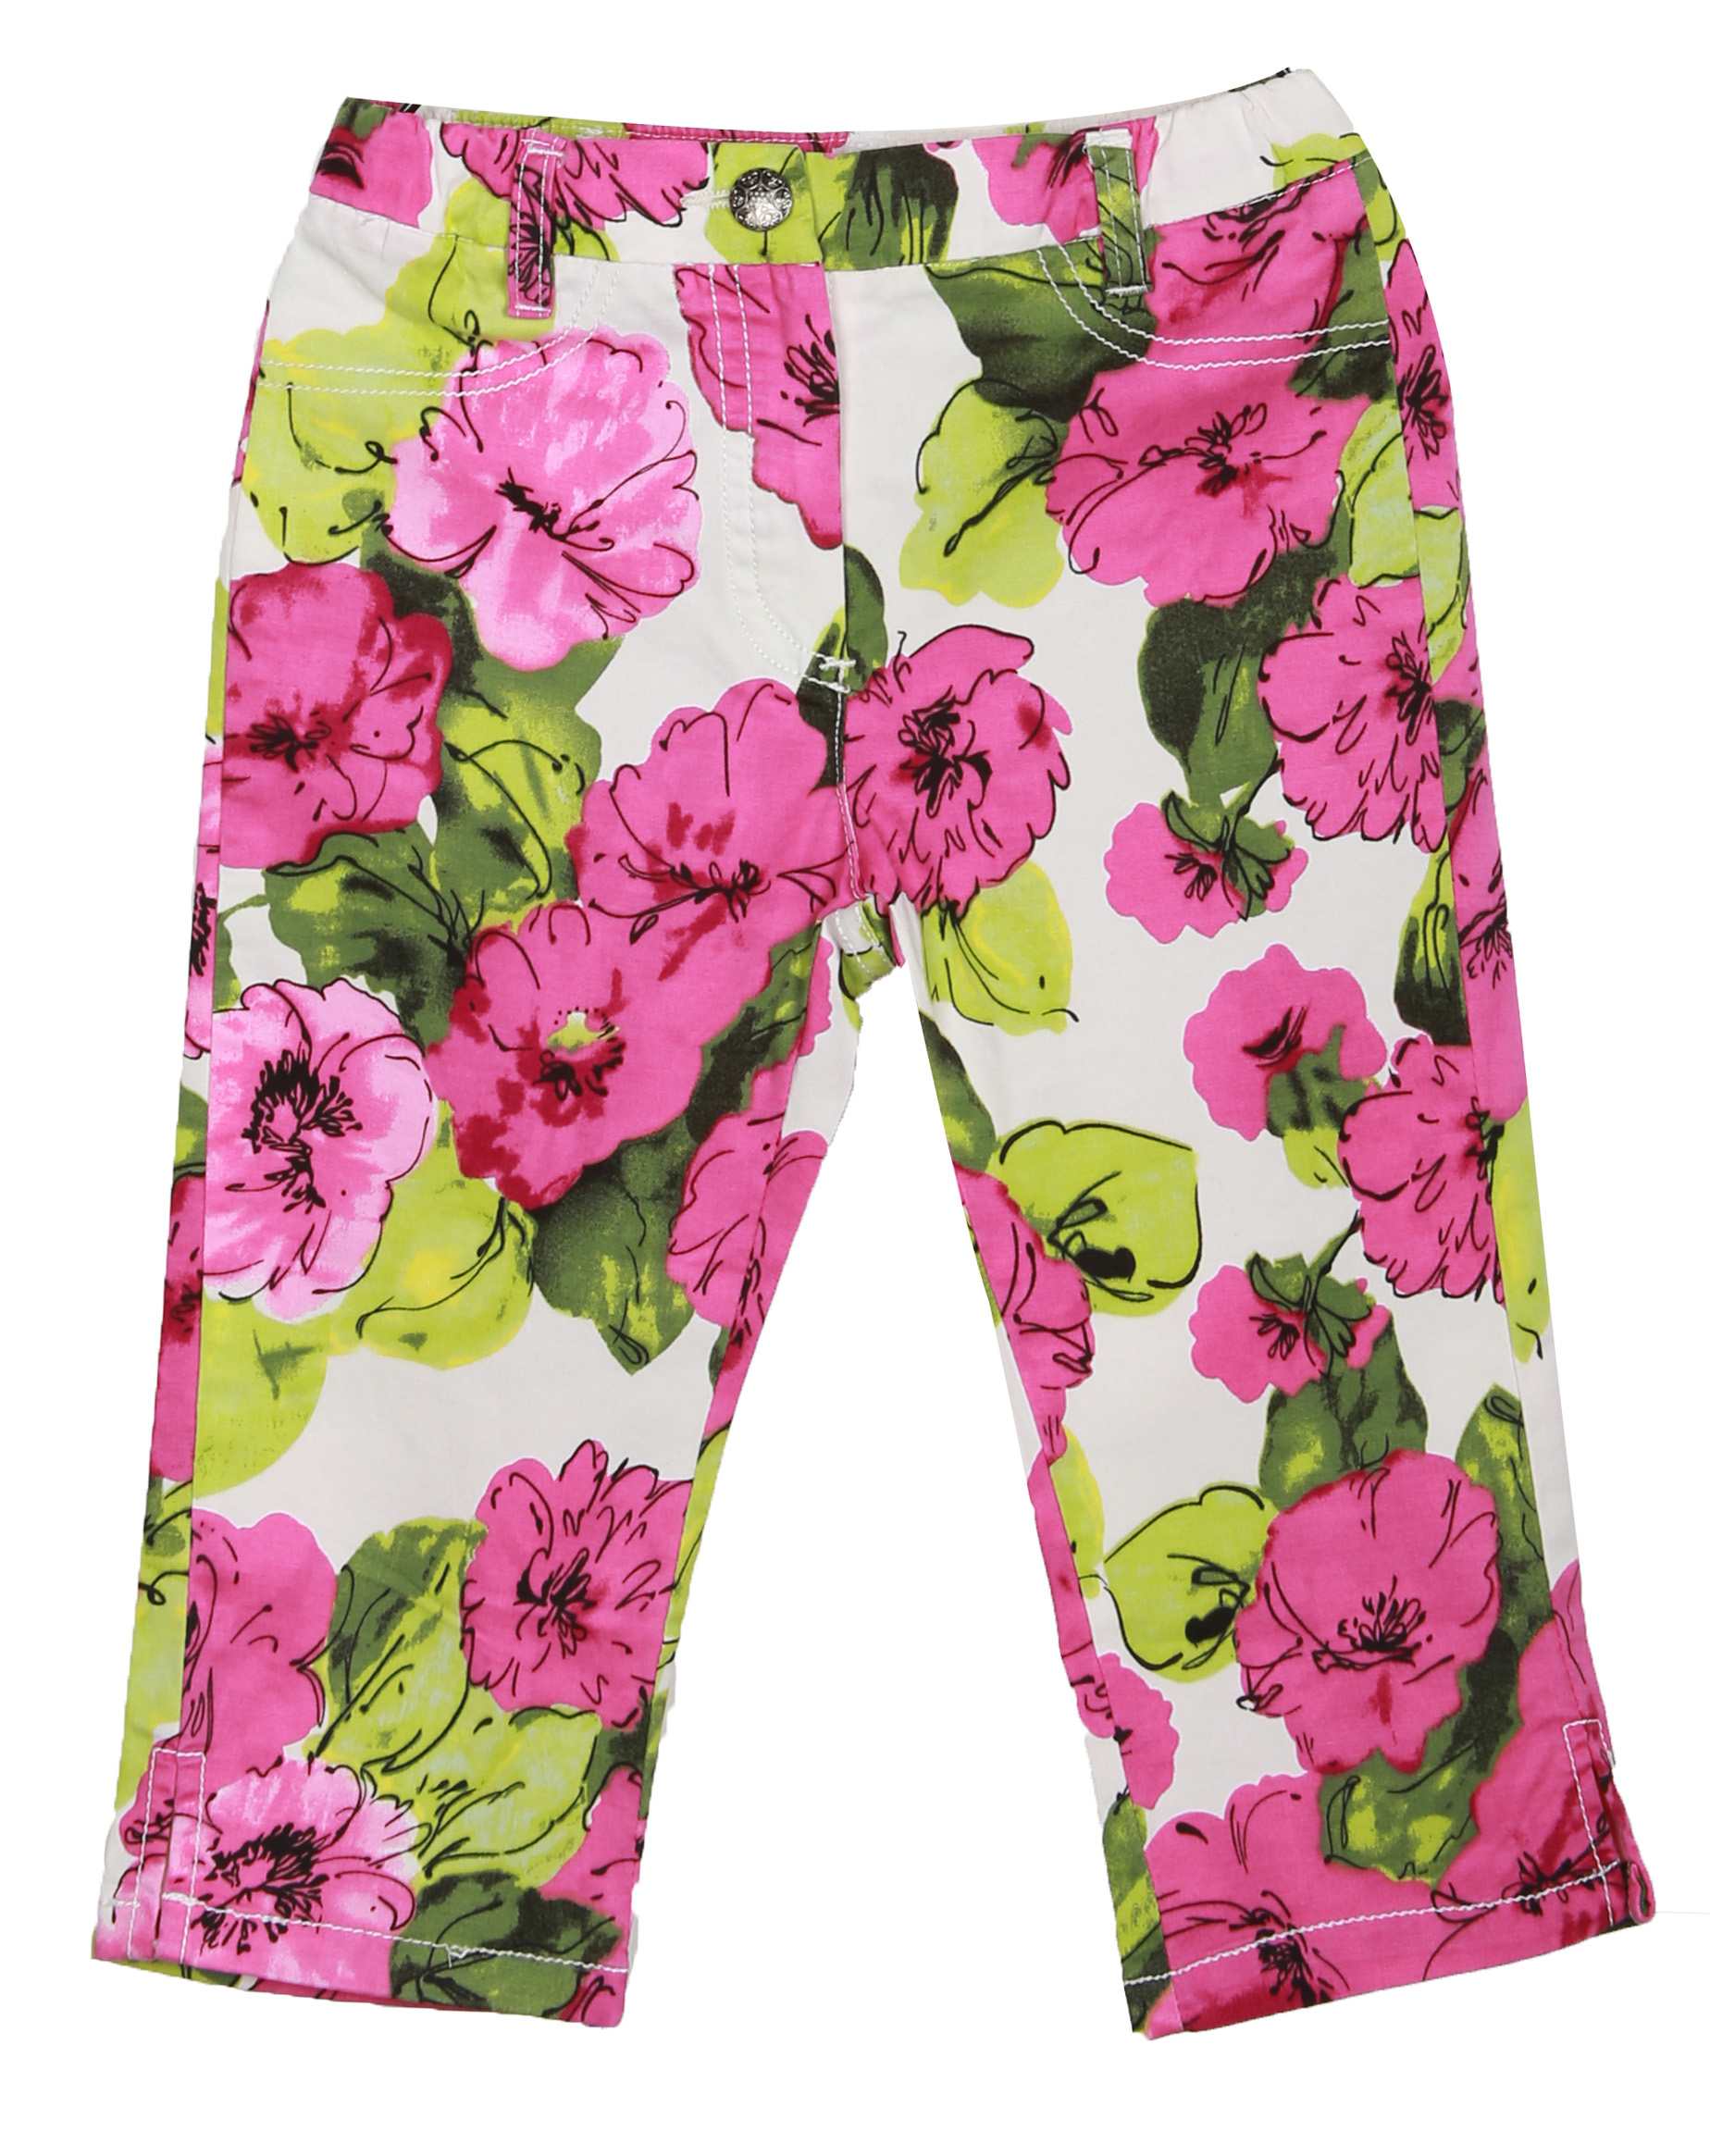 richie house little girls green pink bright floral pants 2